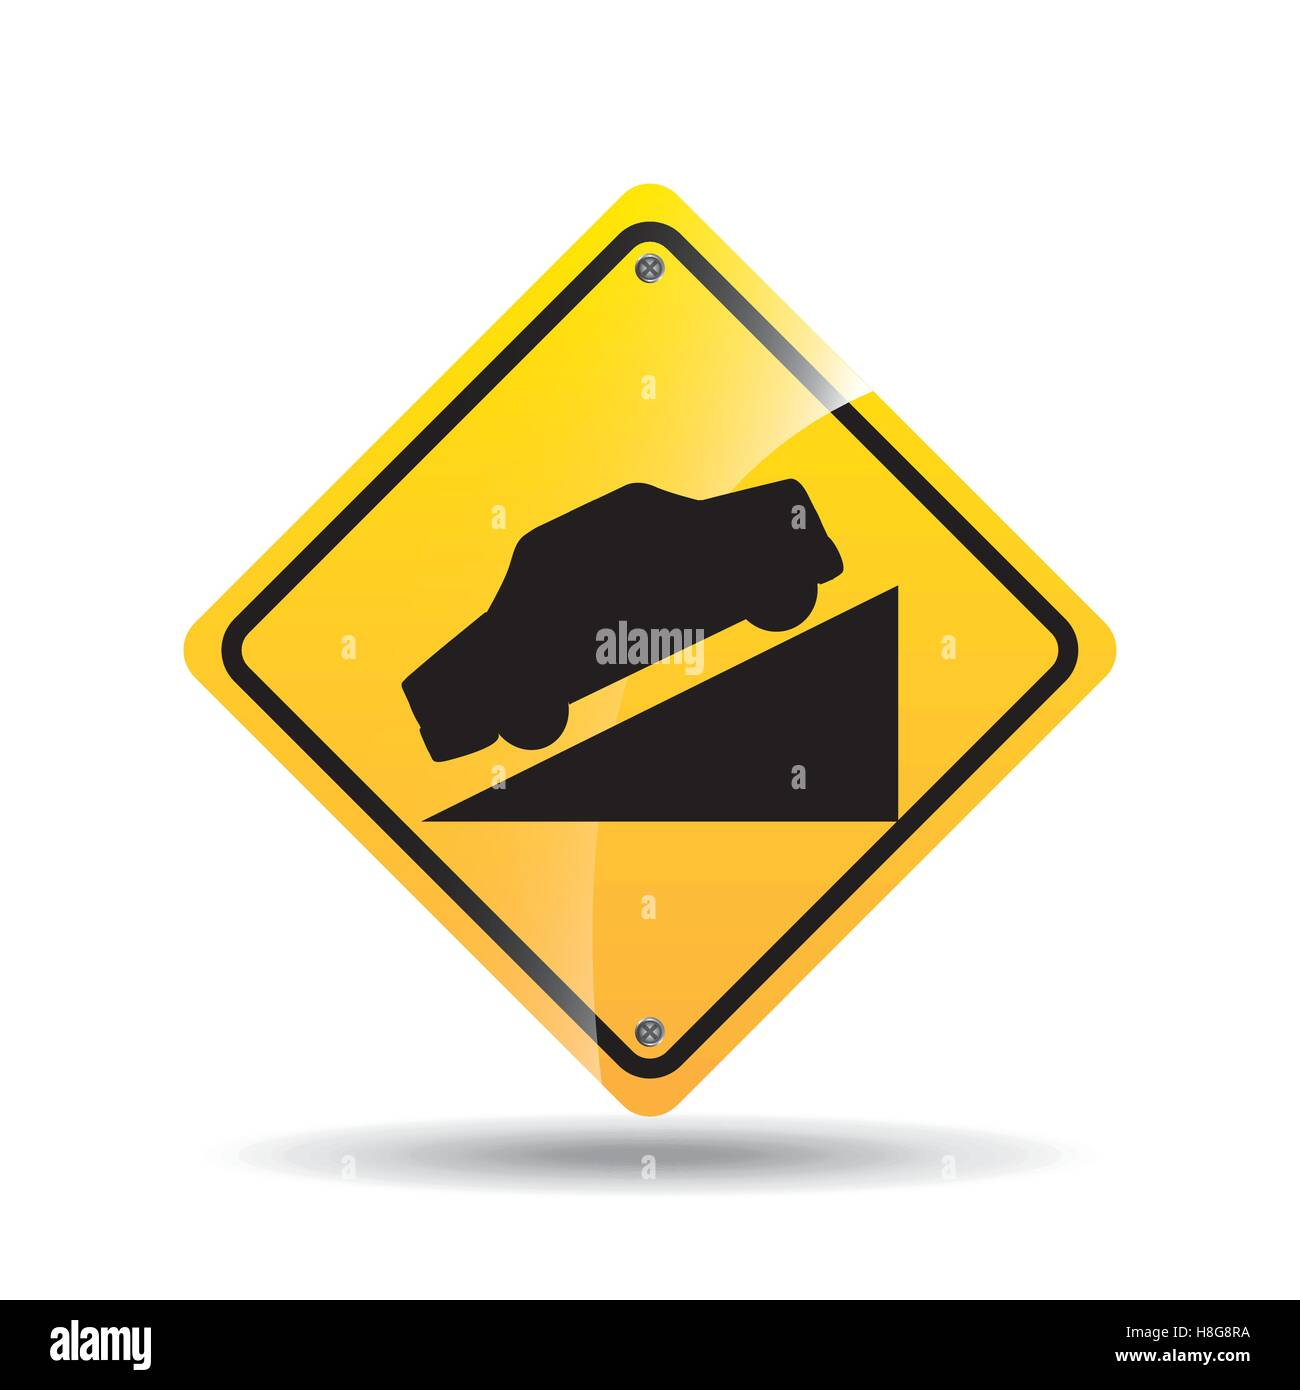 road sign steep decline icon vector illustration eps 10 - Stock Image